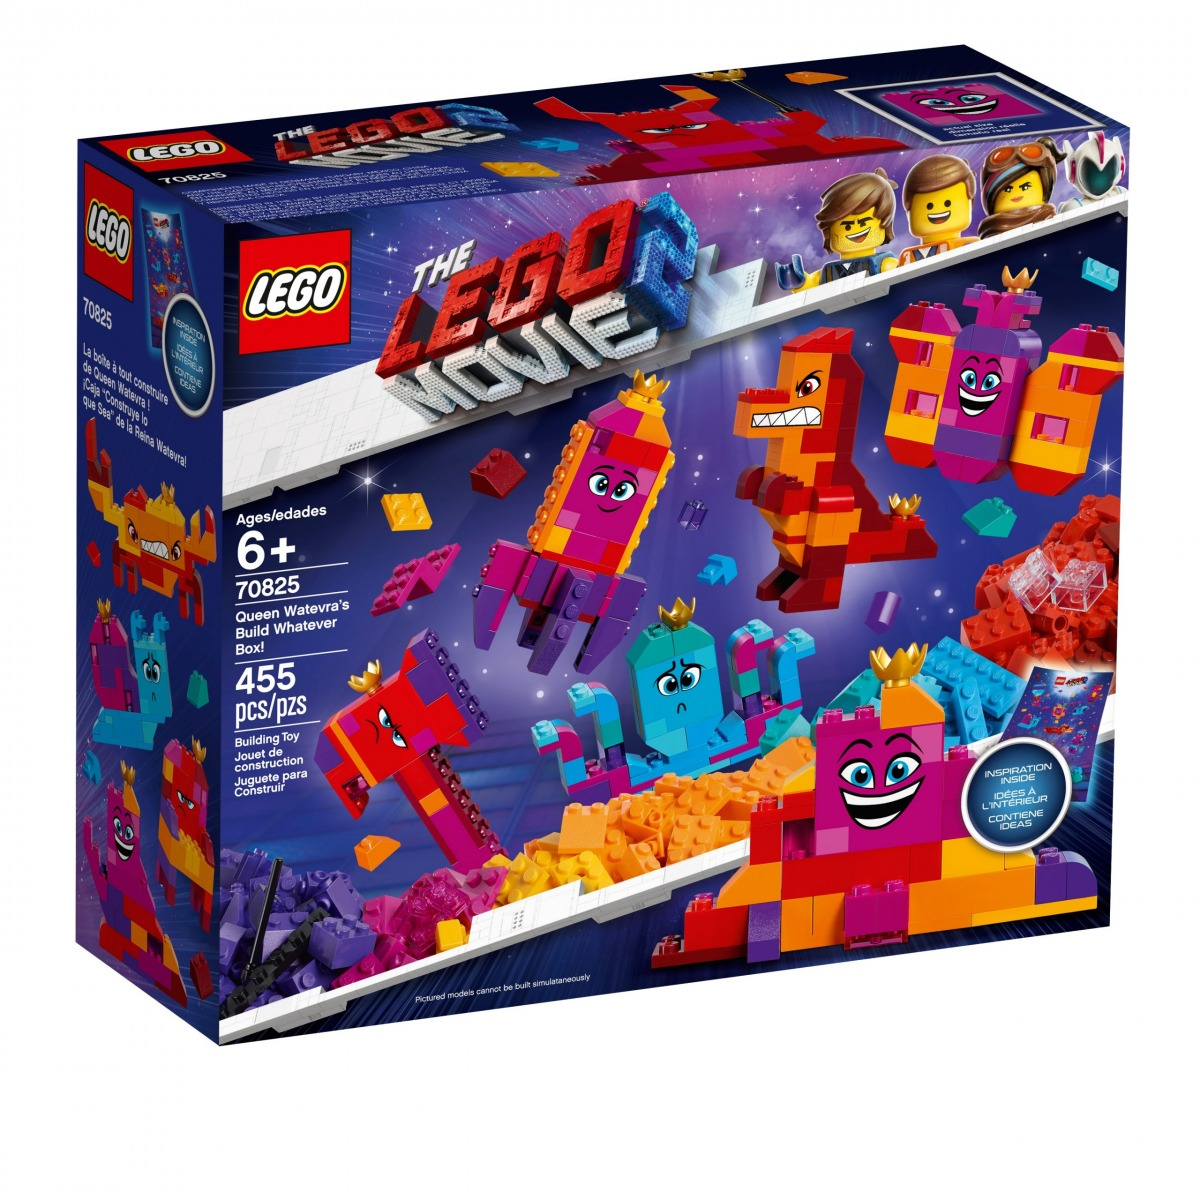 lego 70825 queen watevras build whatever box scaled